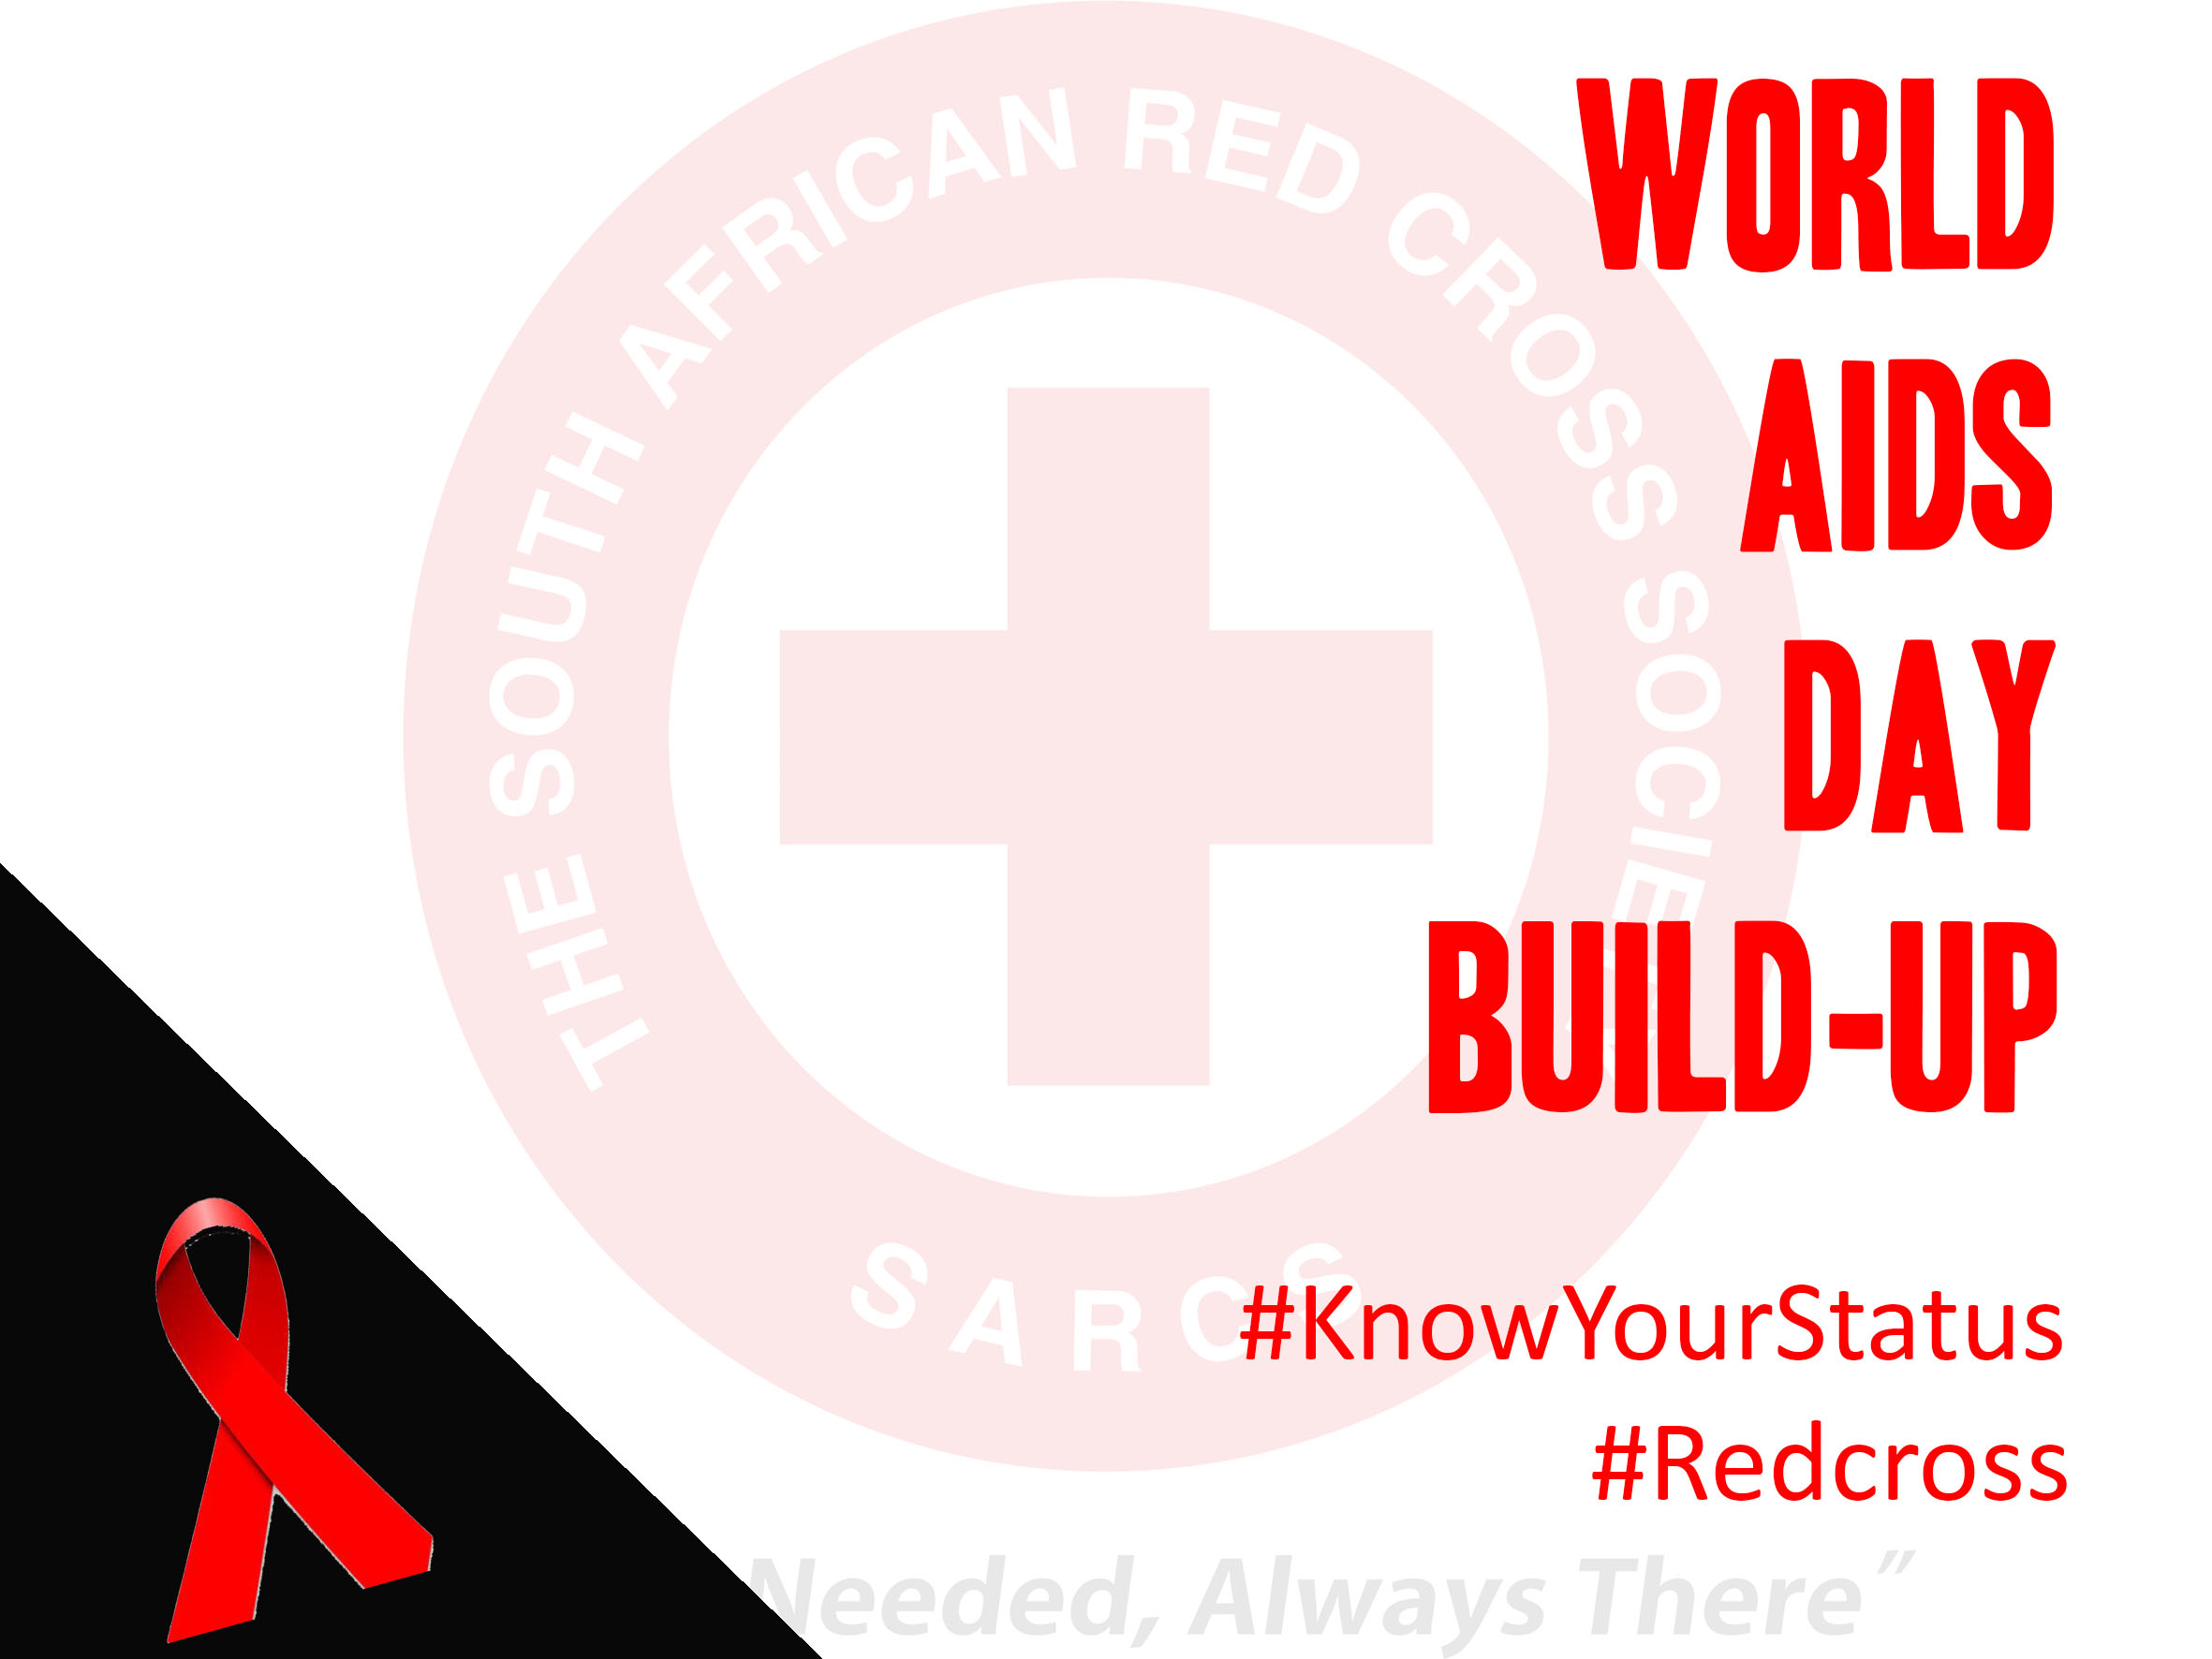 World aids day build up activity – Know your status